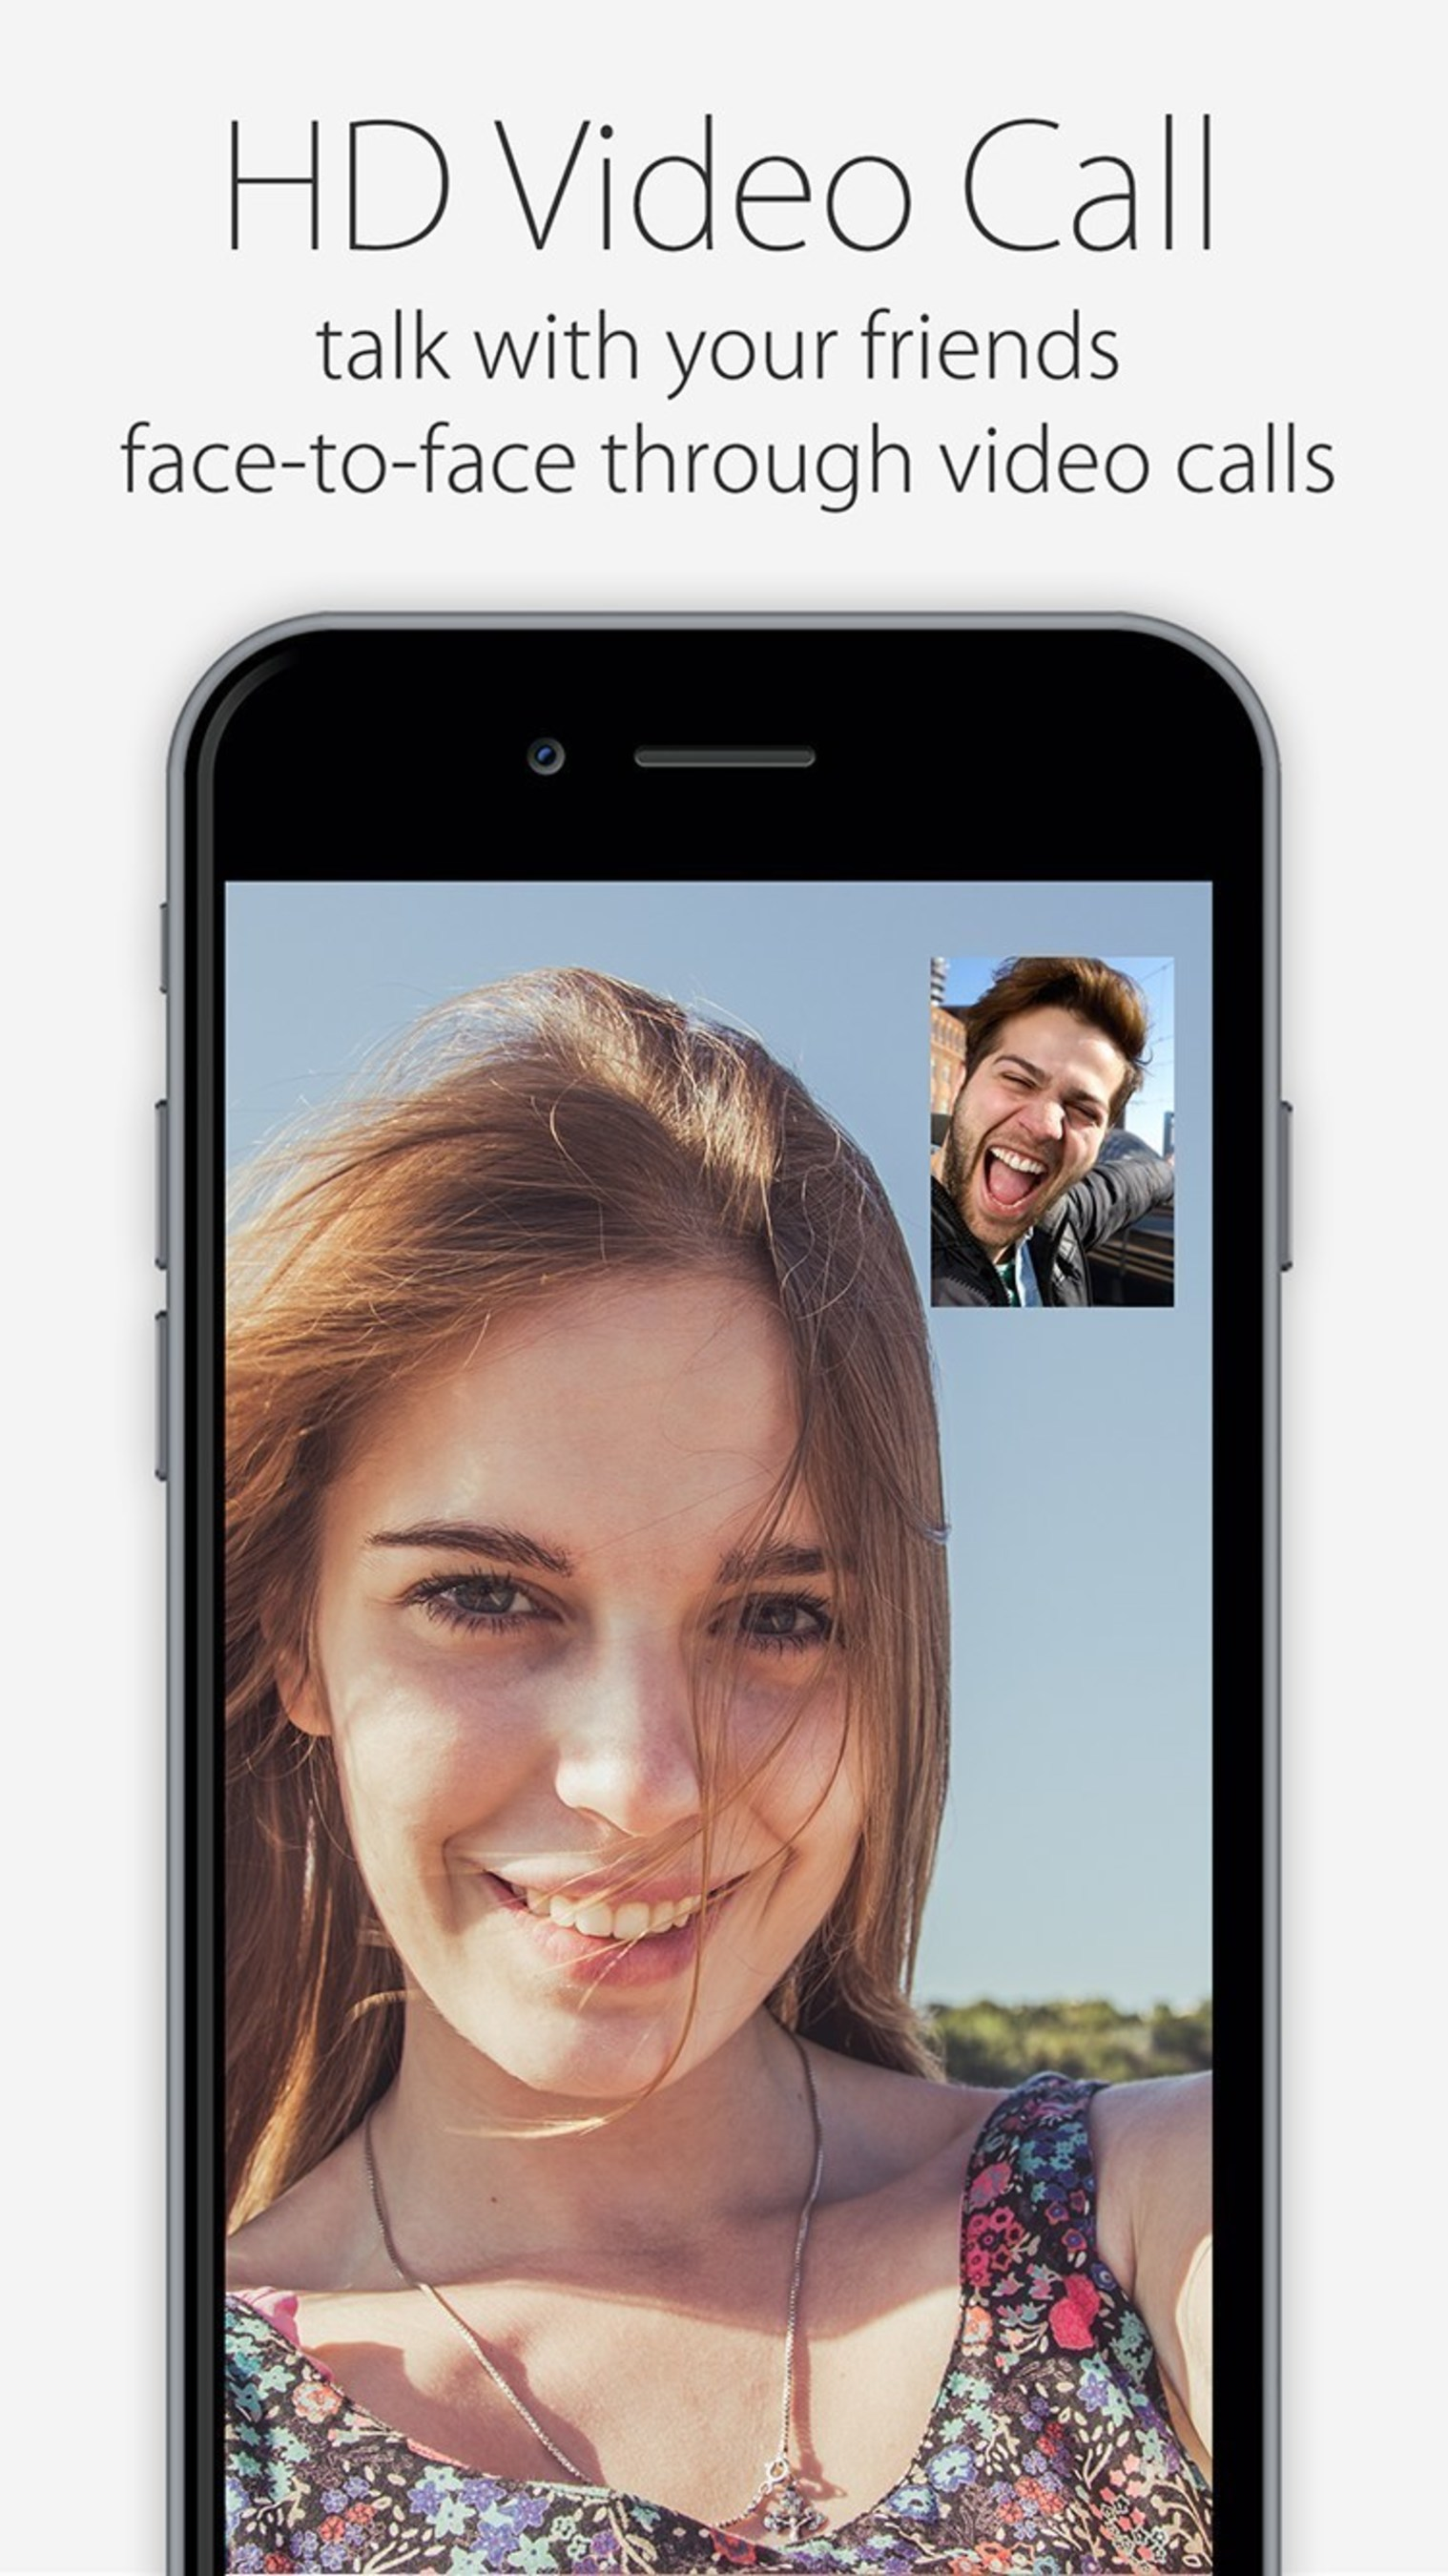 SOMA Messenger delivers the highest quality HD video calls on a messenger app